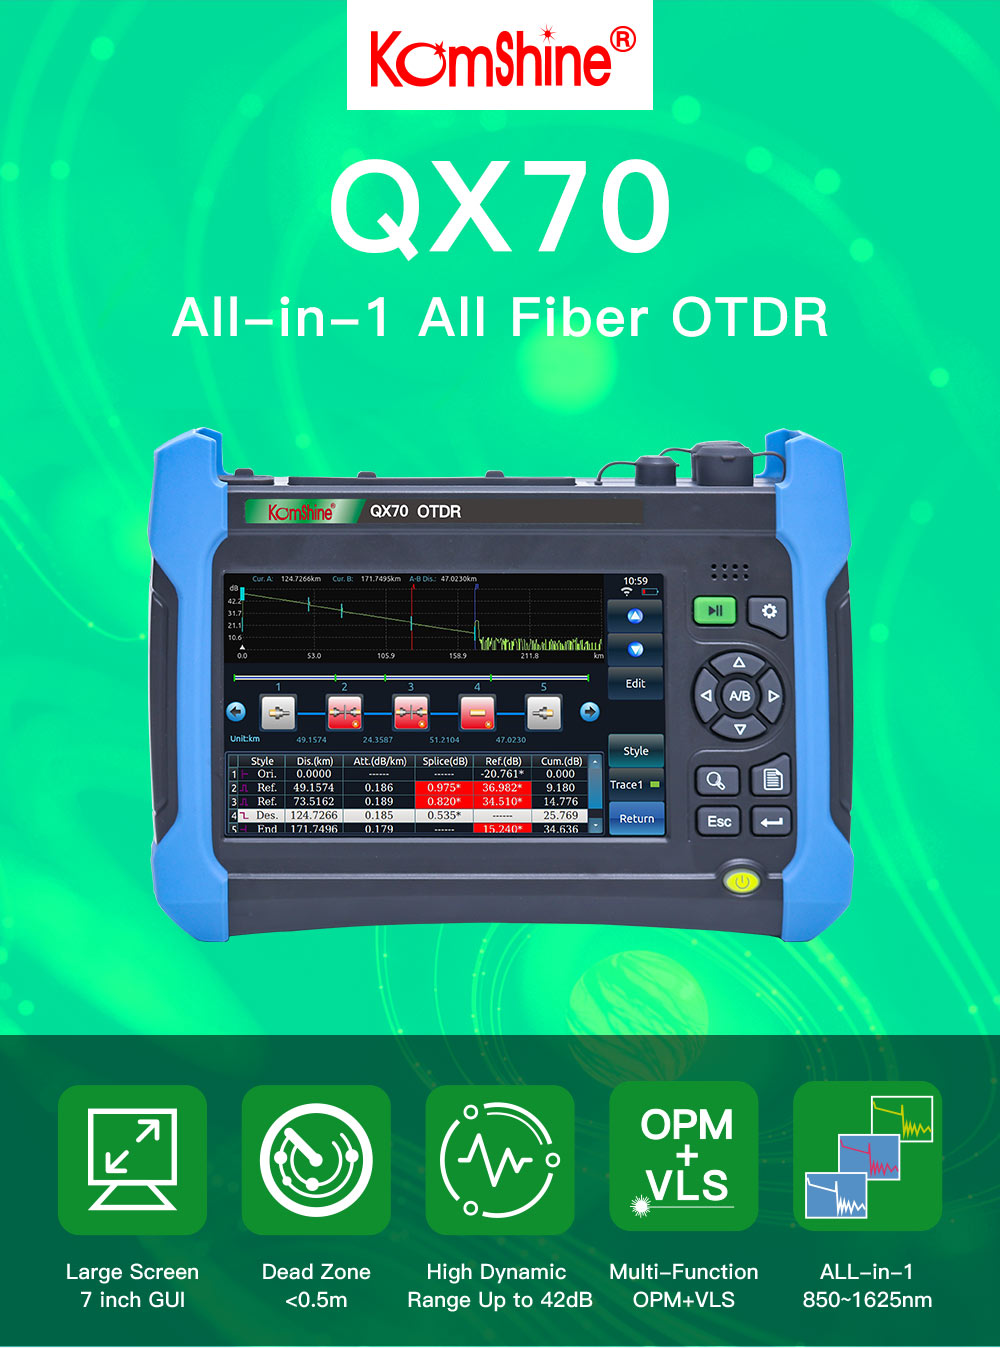 1625nm PON OTDR KomShine QX70 OTDR 1310/1550/1625nm built in iOLM Link map function. Live PON OTDR testing 1X32 Splitter1625nm PON OTDR KomShine QX70 OTDR 1310/1550/1625nm built in iOLM Link map function. Live PON OTDR testing 1X32 Splitter